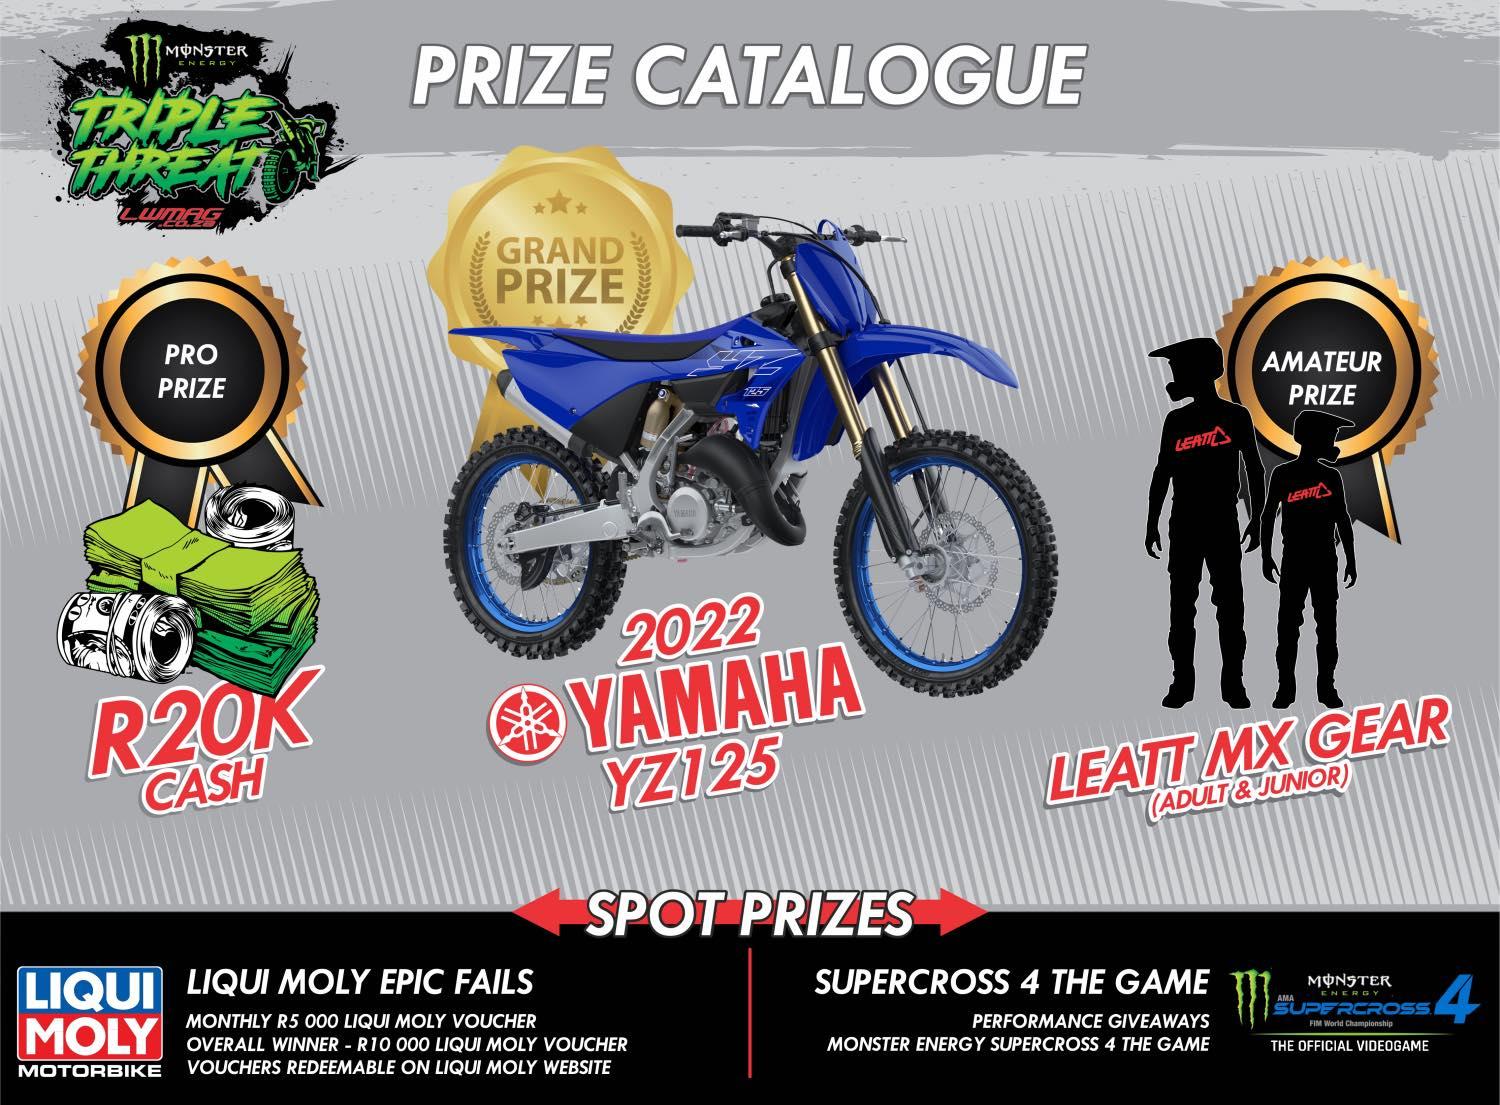 Monster Energy Triple Threat Prize Catalogue